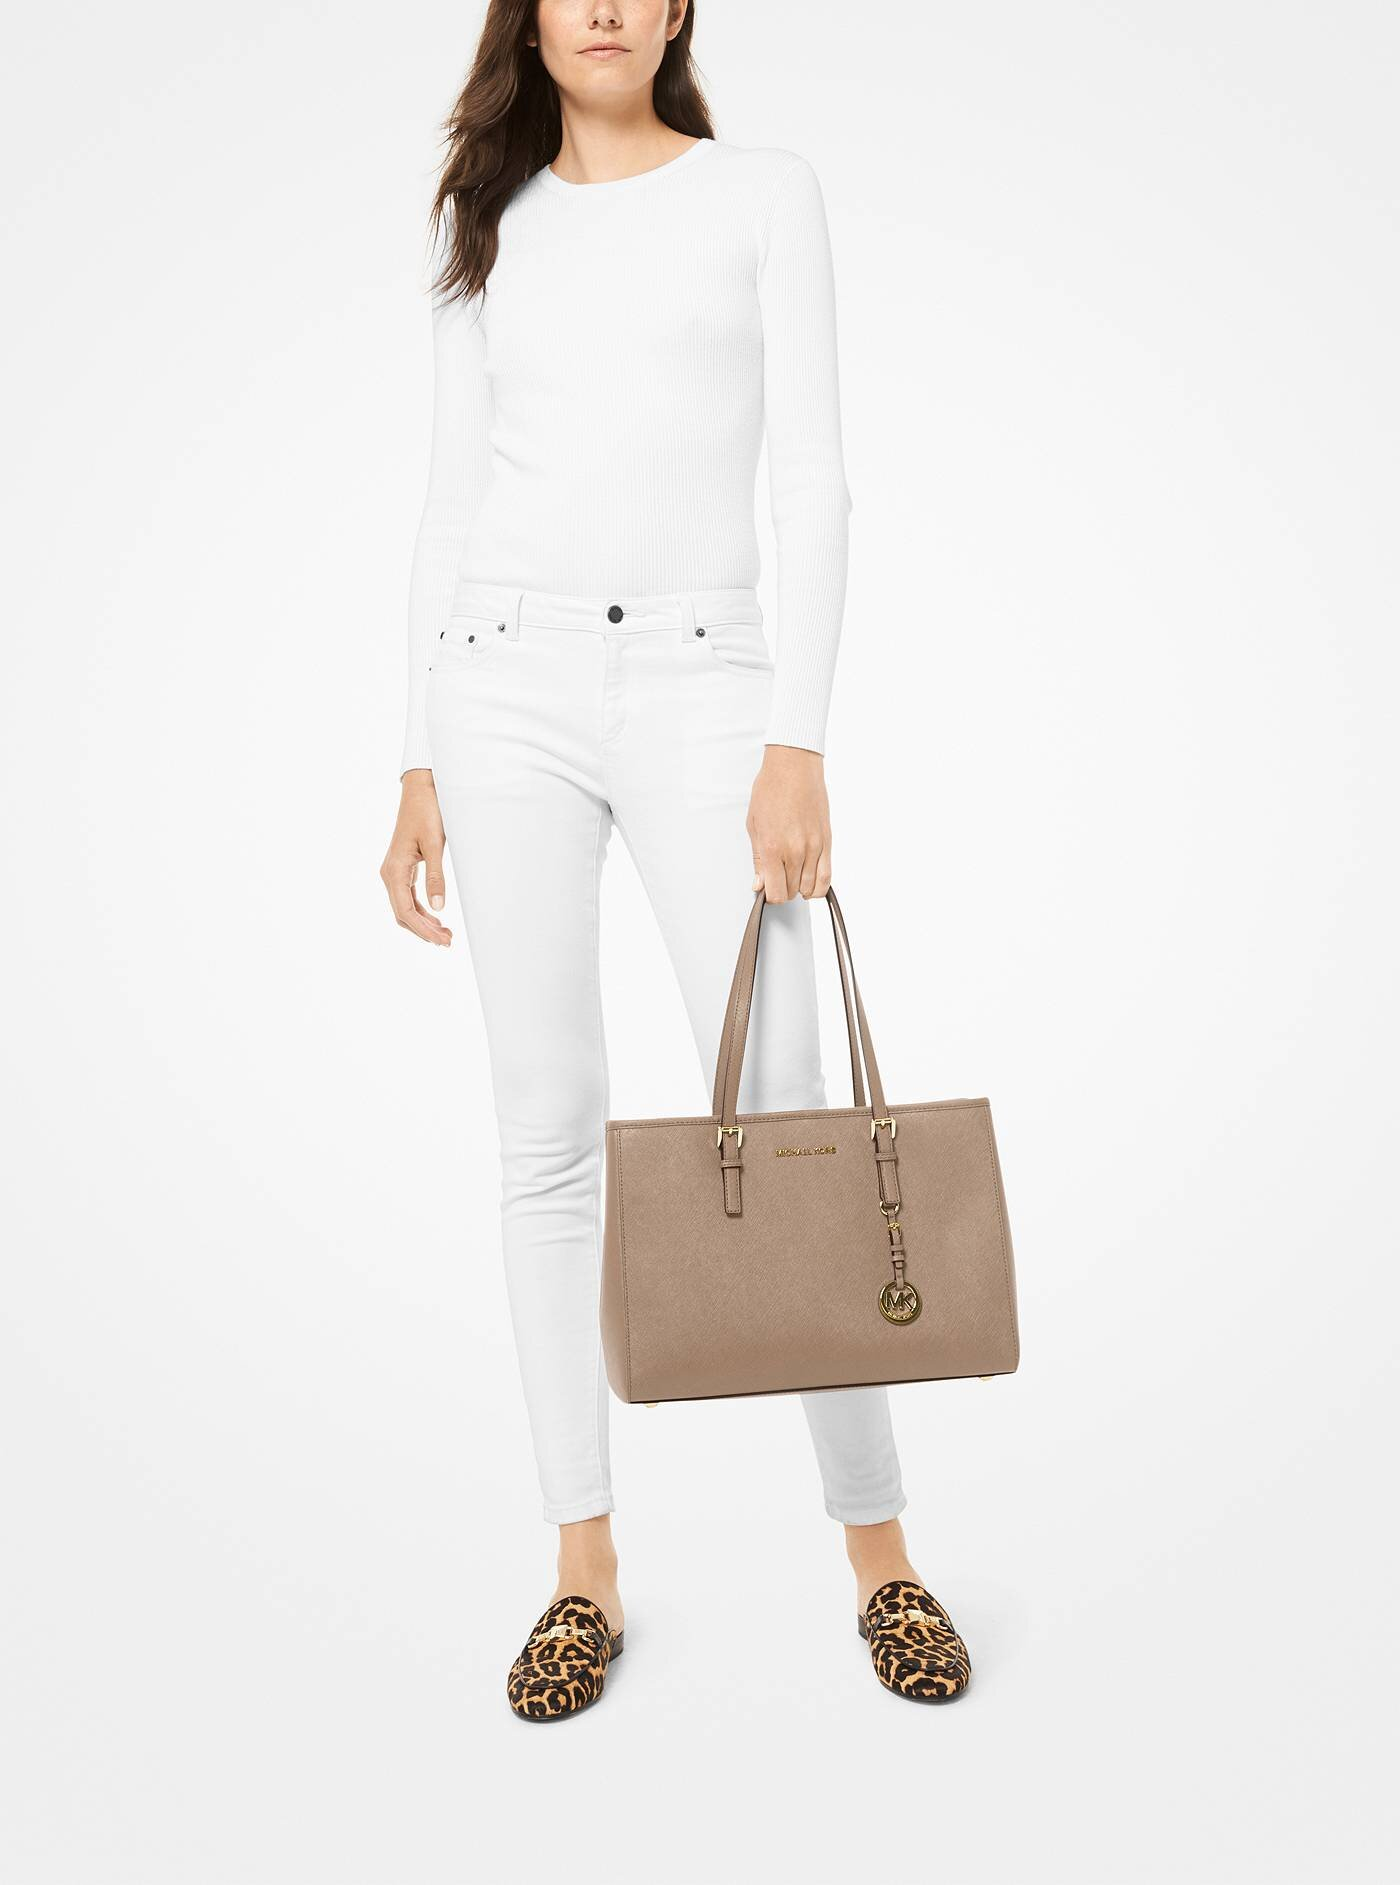 Jet Set Saffiano Leather Tote Bag